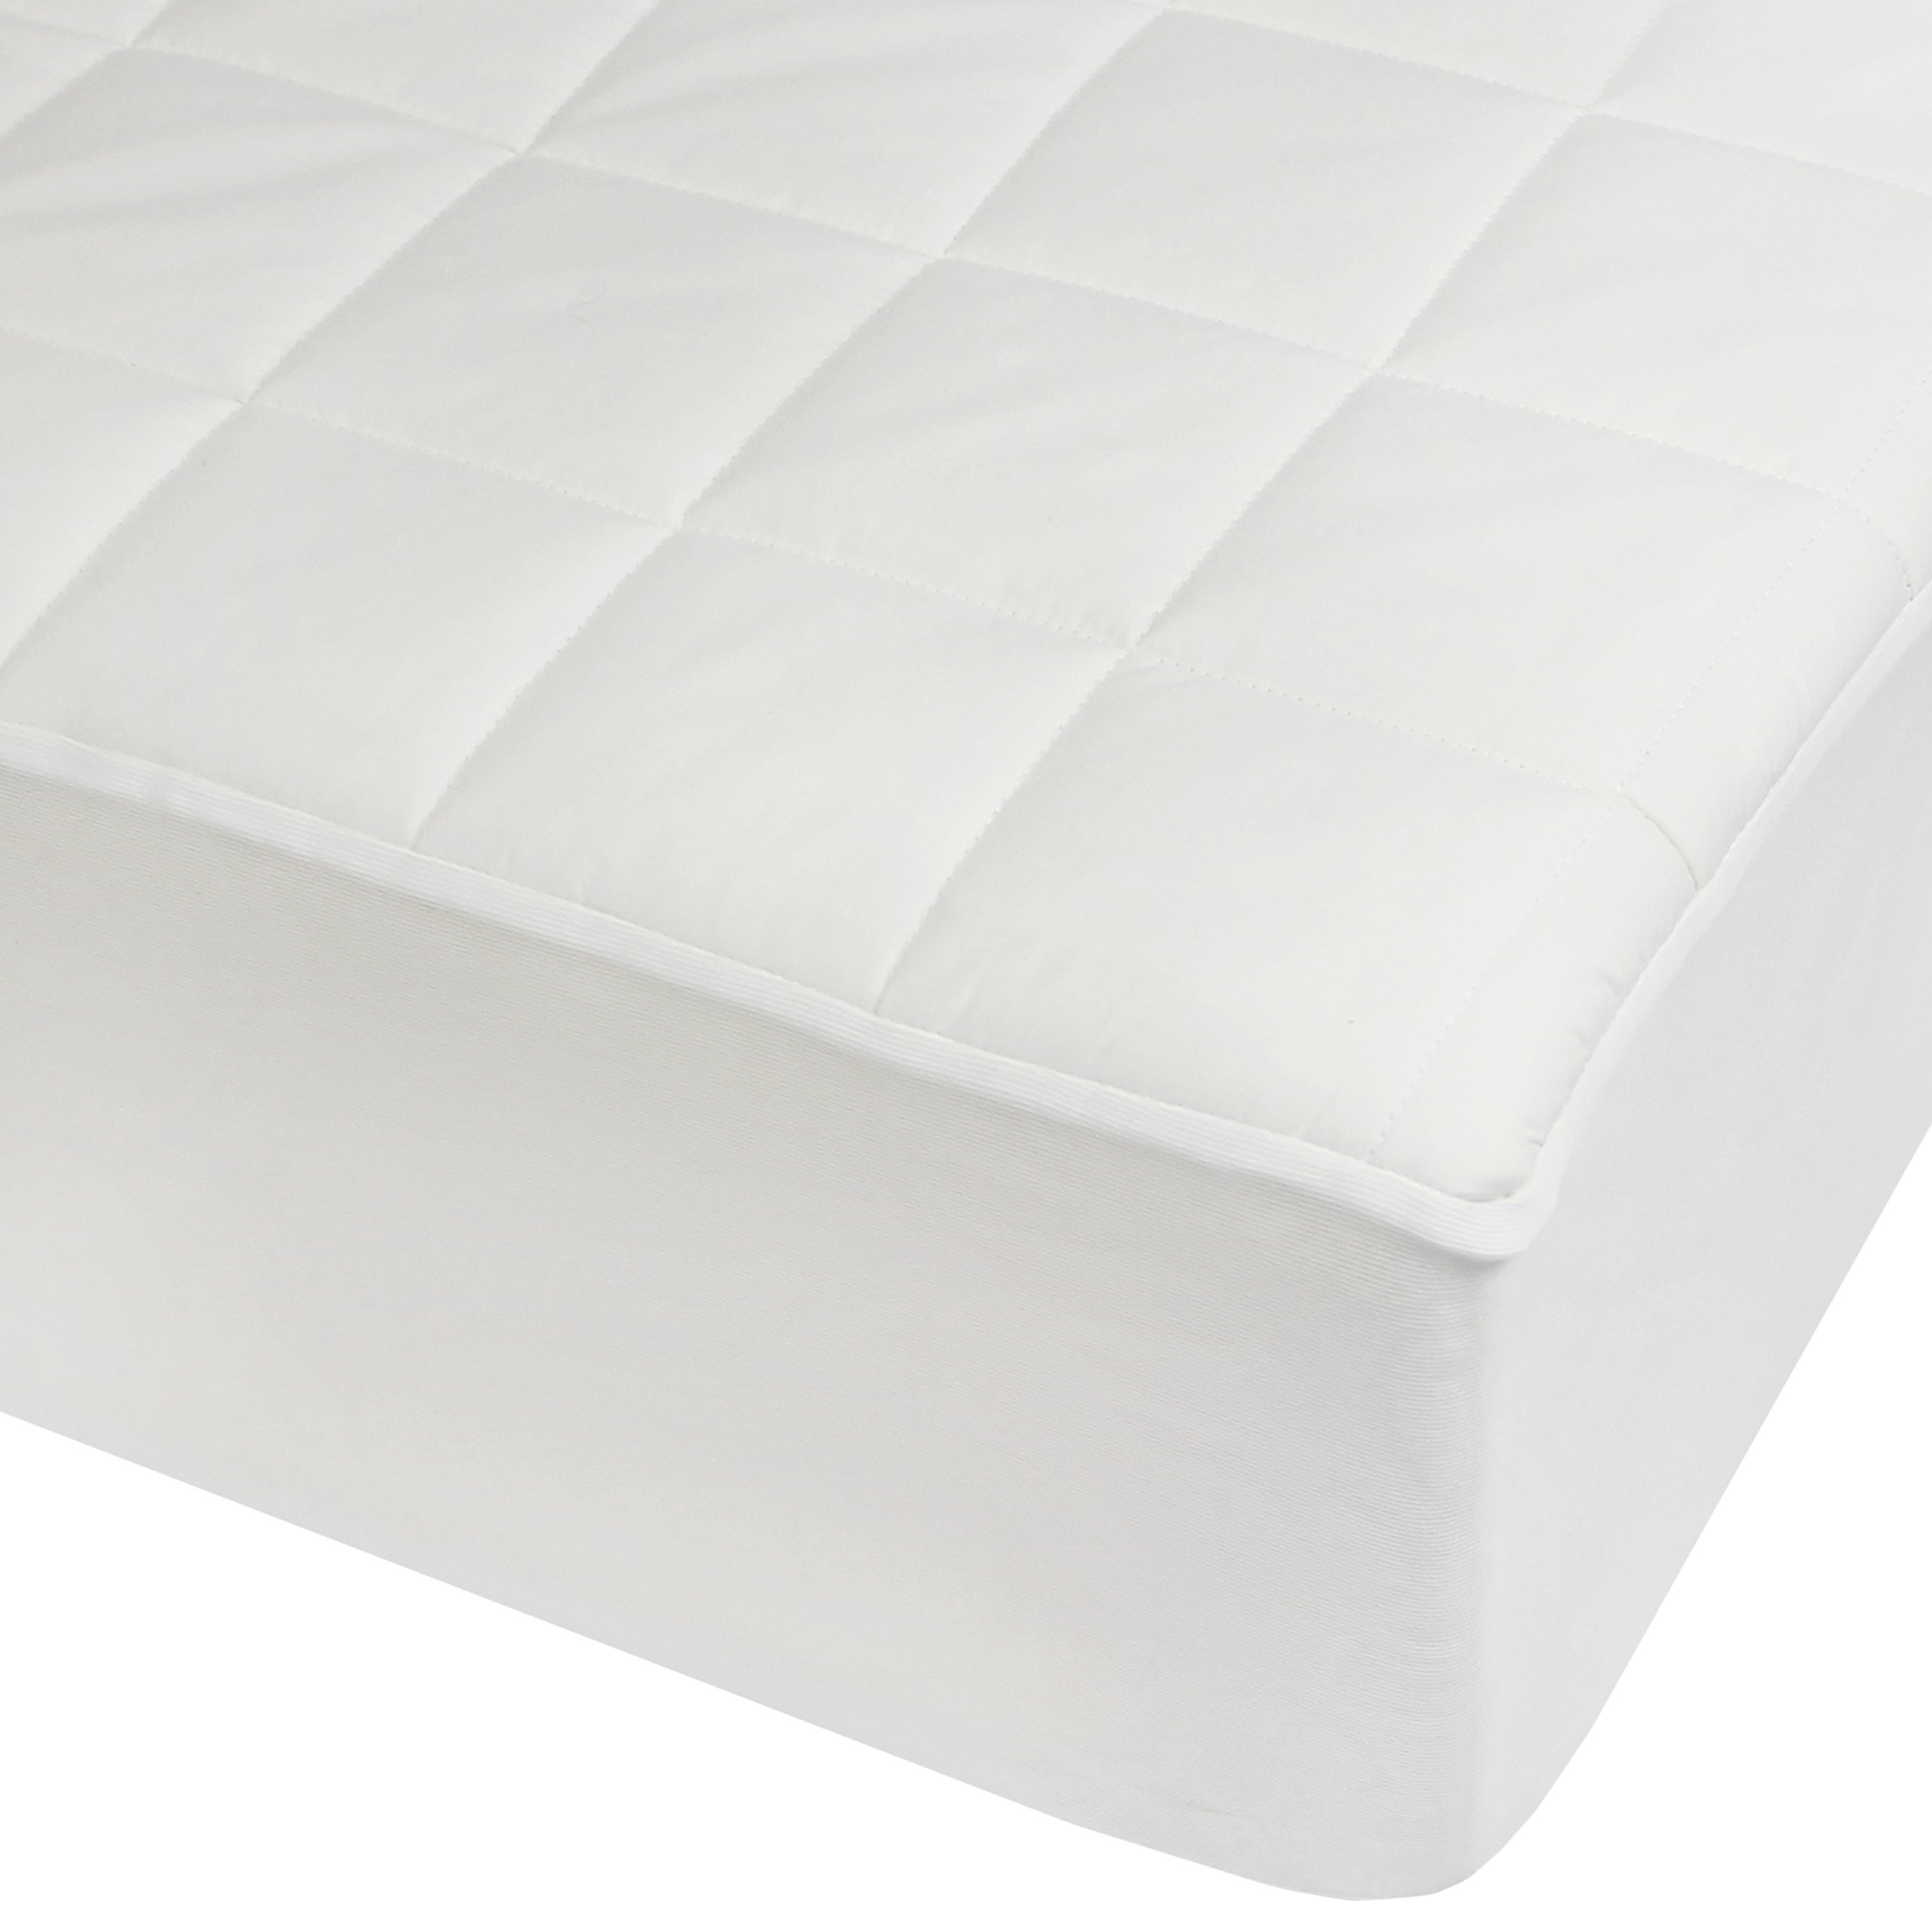 Century Home C413-103 Hotel Collection Premium Quilted Mattress Pad, Queen